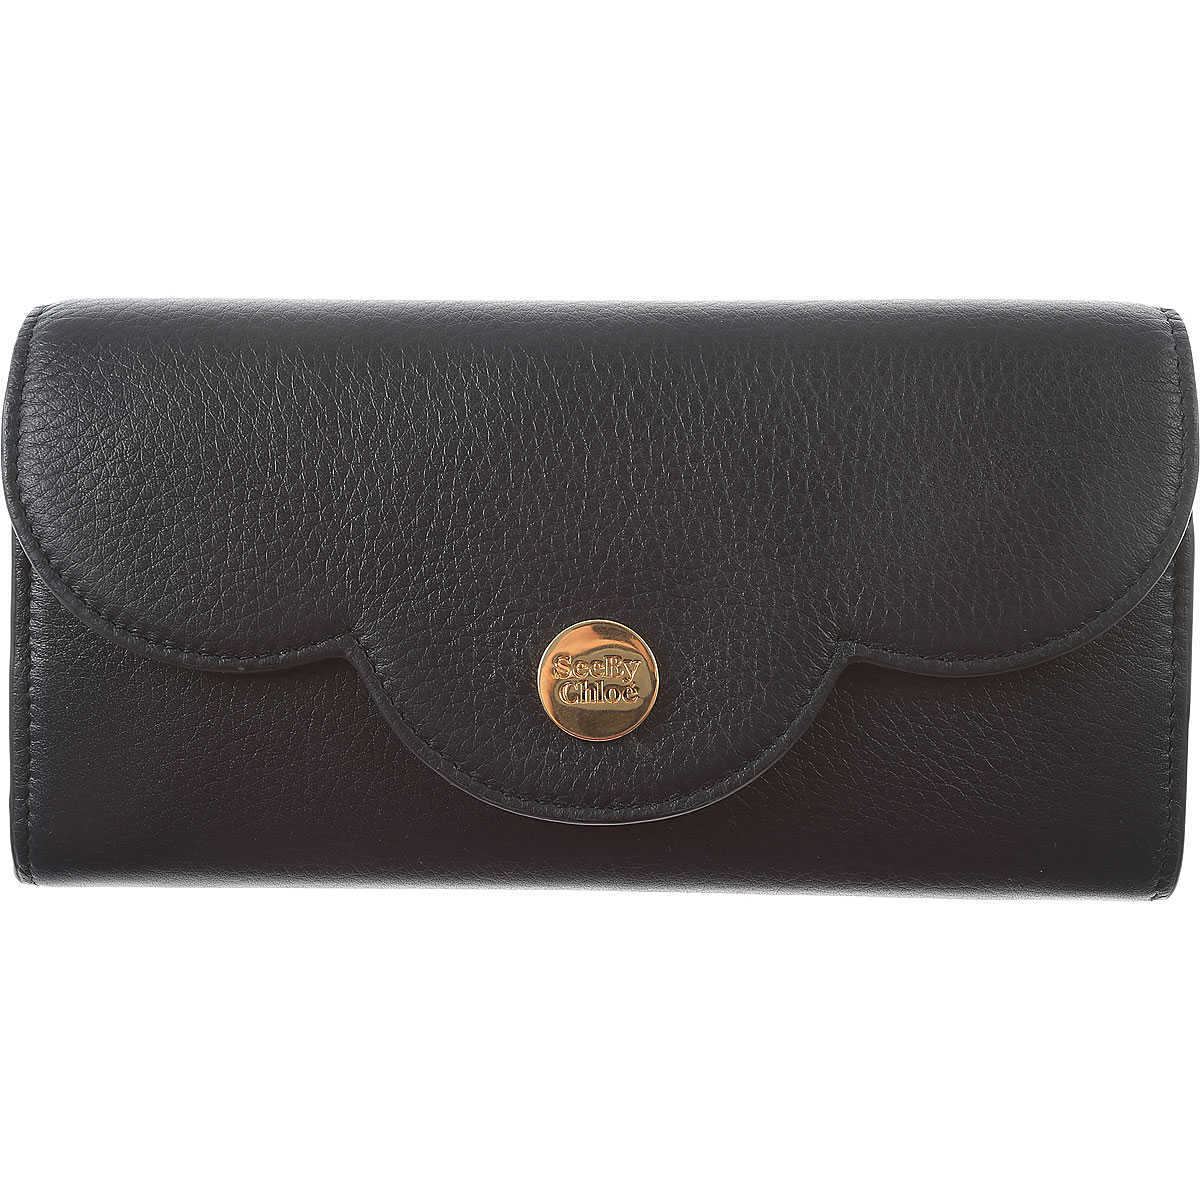 See By Chloe Wallet for Women Midnight UK - GOOFASH